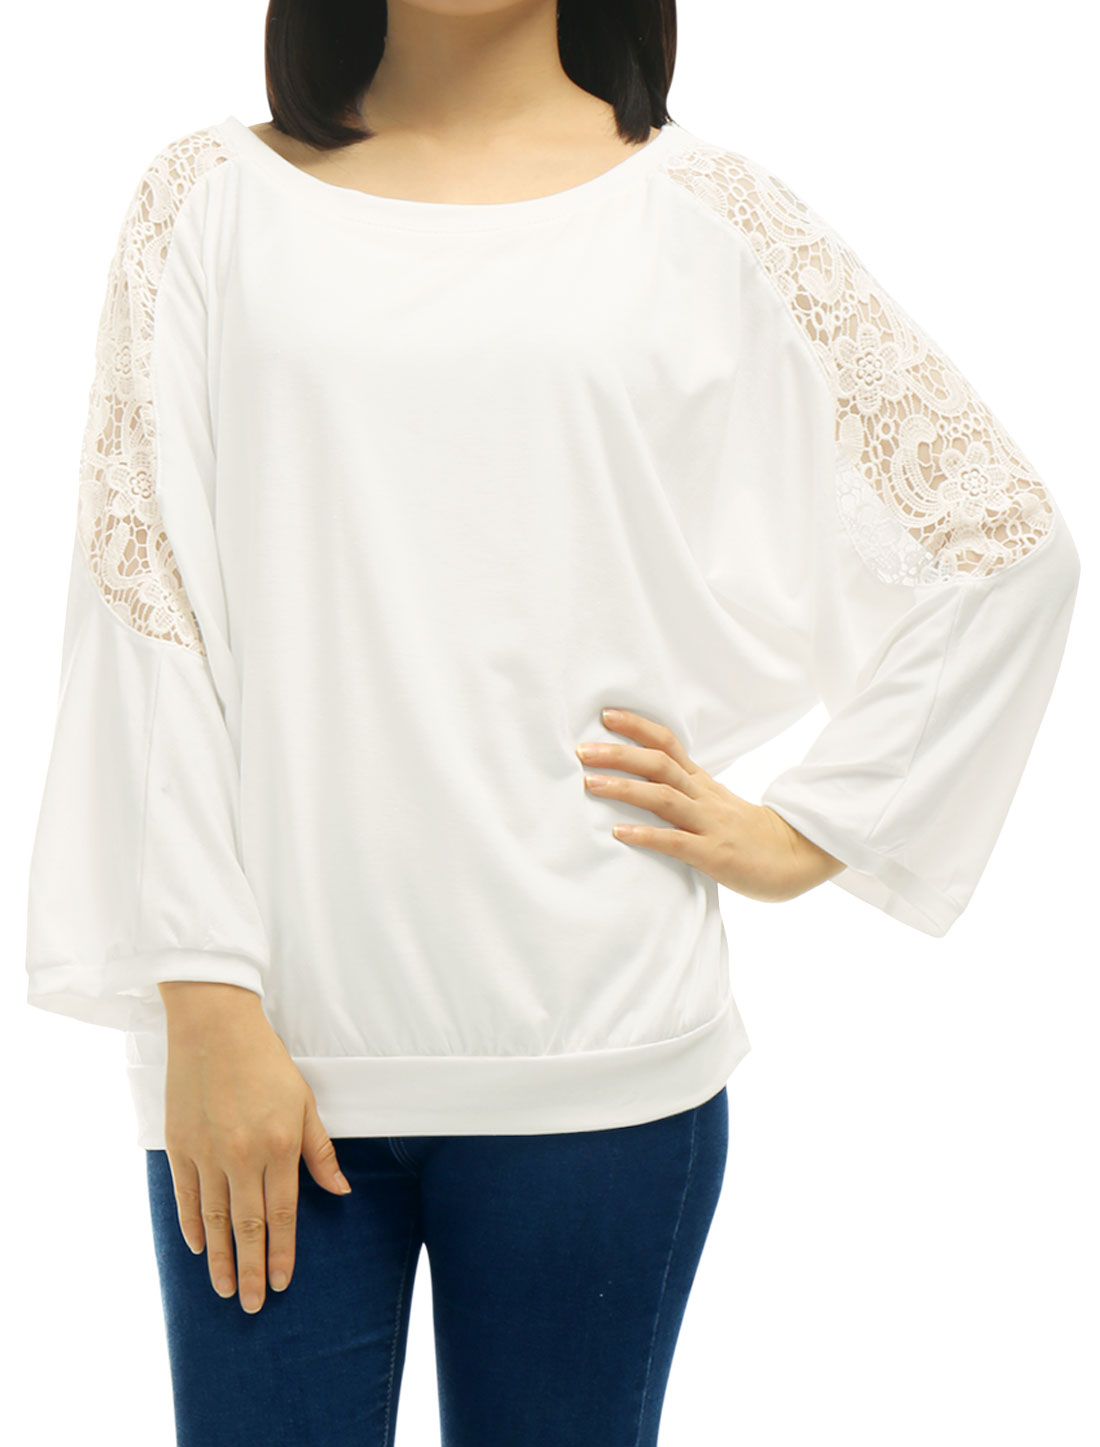 Women-Round-Neck-3-4-Batwing-Sleeves-Crochet-Panel-Loose-T-shirt